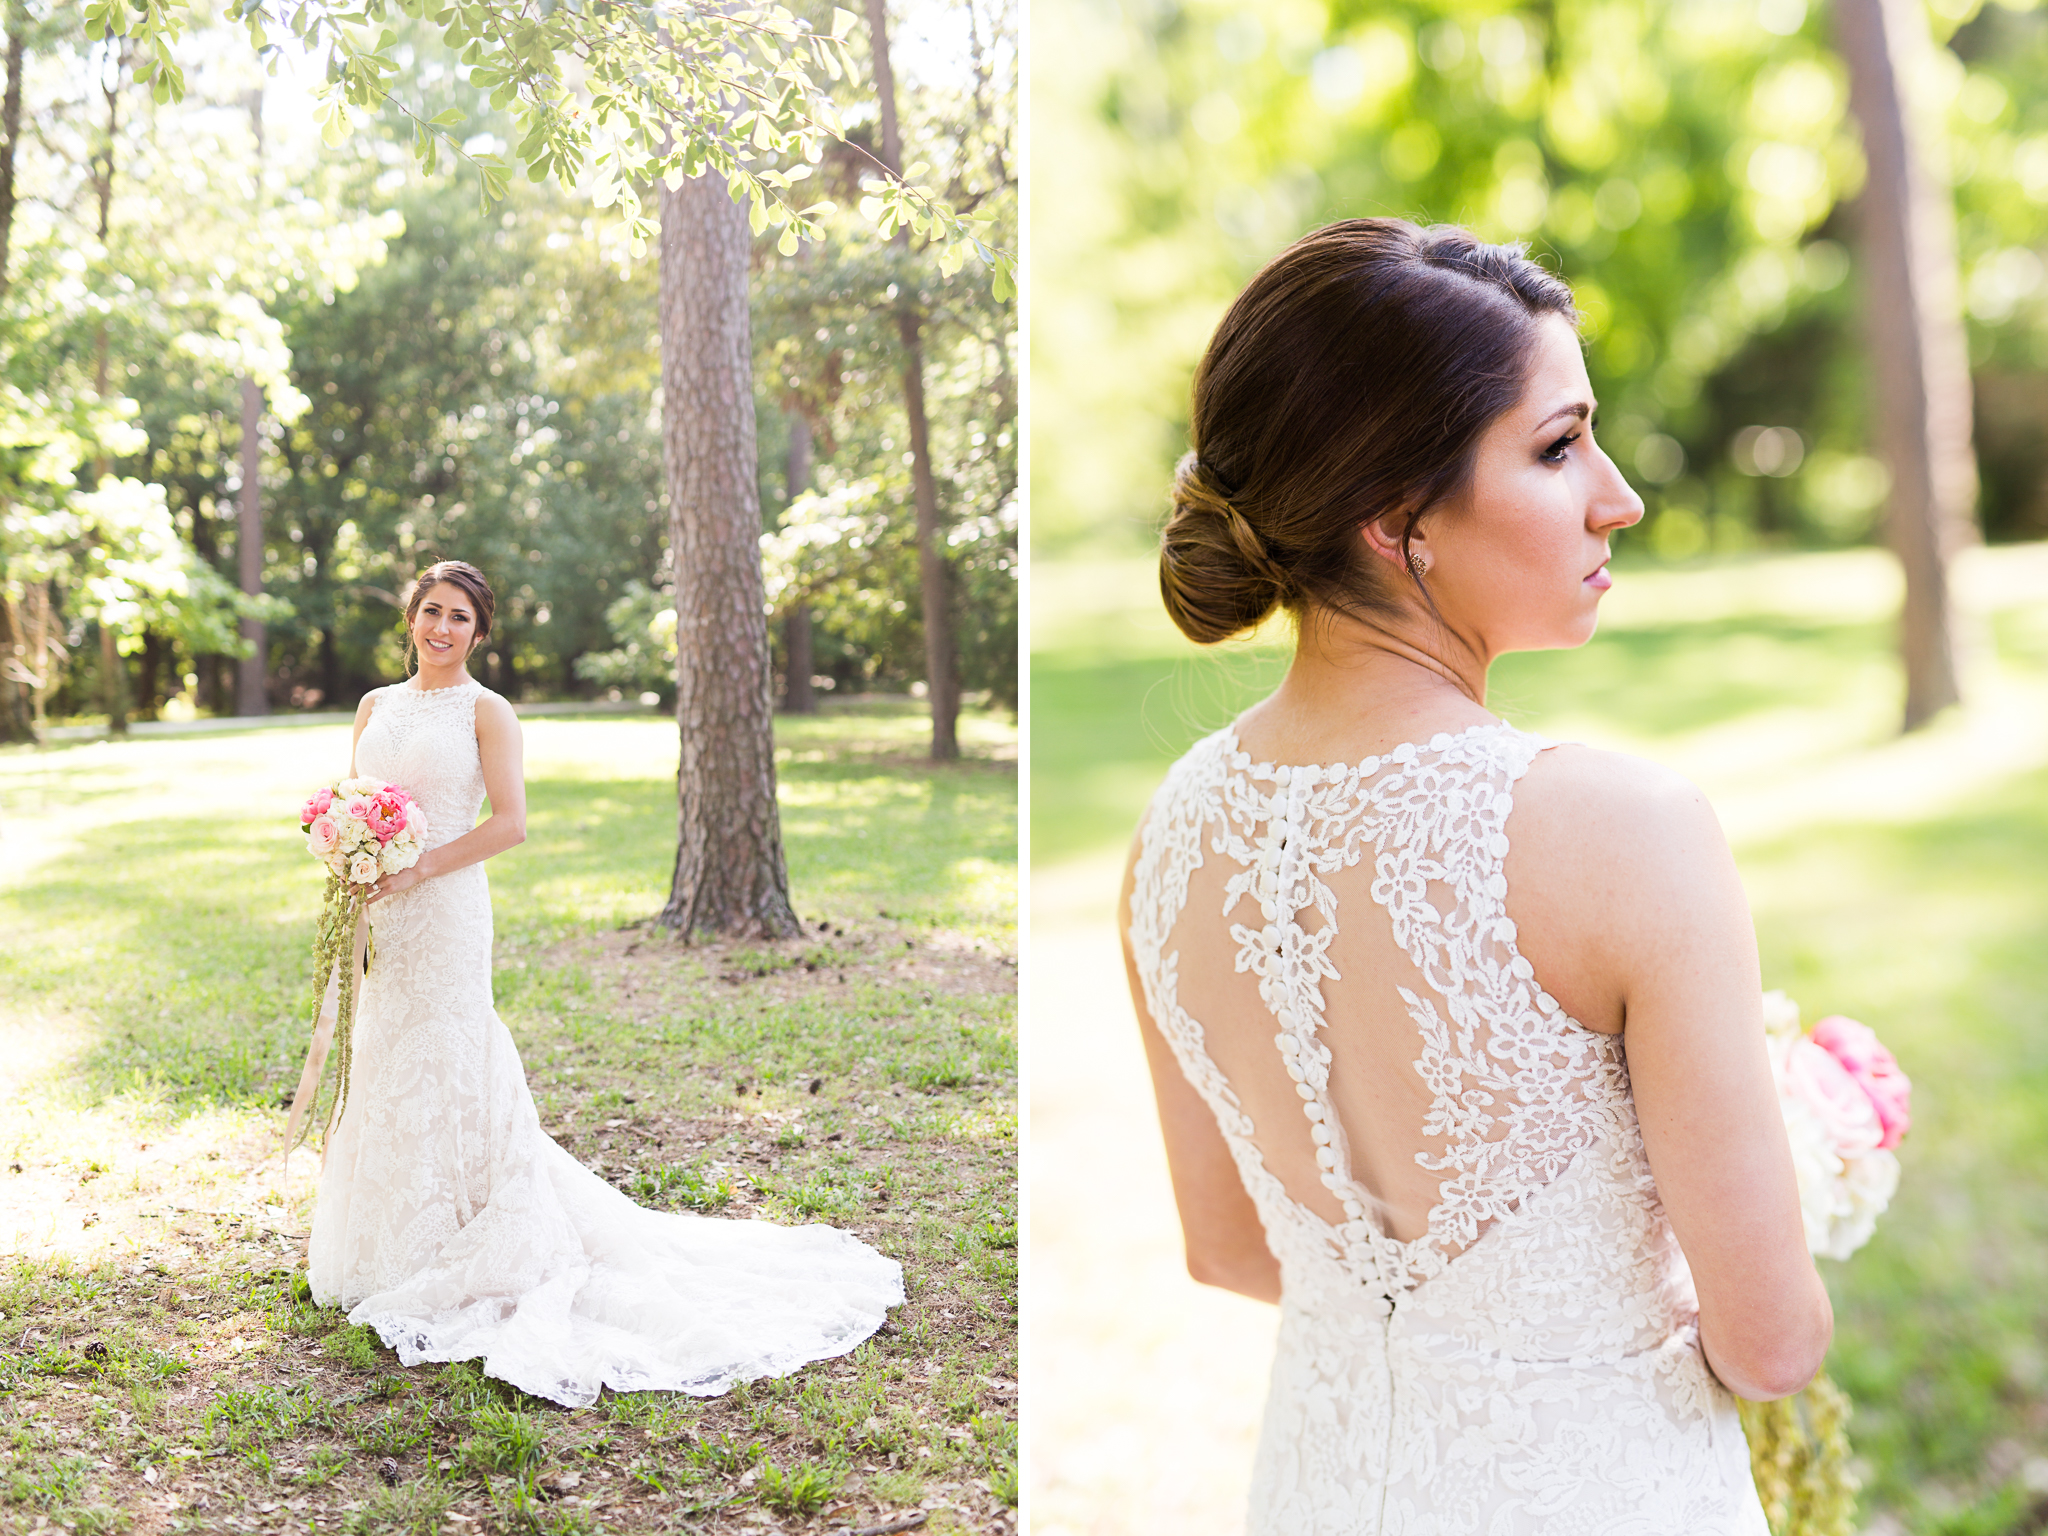 oklahoma wedding photographer pasture at willows ranch broken bow bridal portrait peonies lace detail back gown